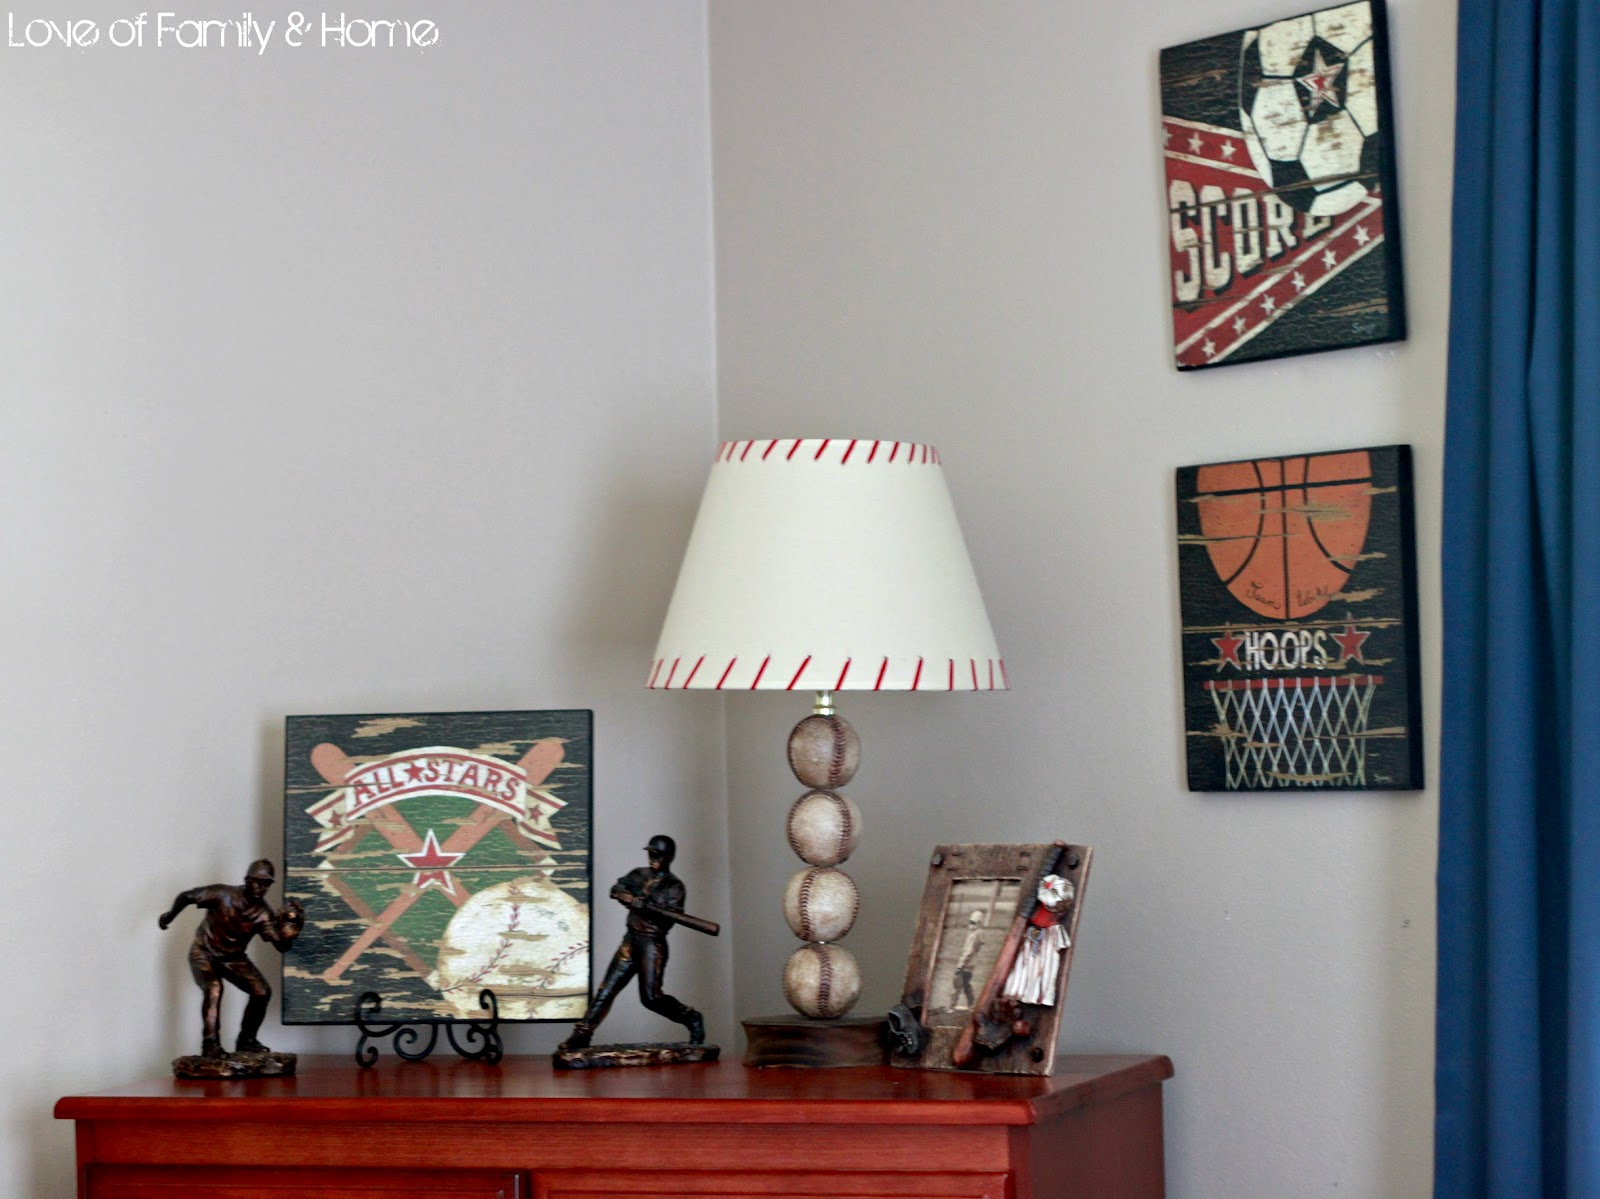 Hobby lobby lamp best lamp 2017 47 best hobby lobby images on lobbies and vine lantern table lamp geotapseo Image collections